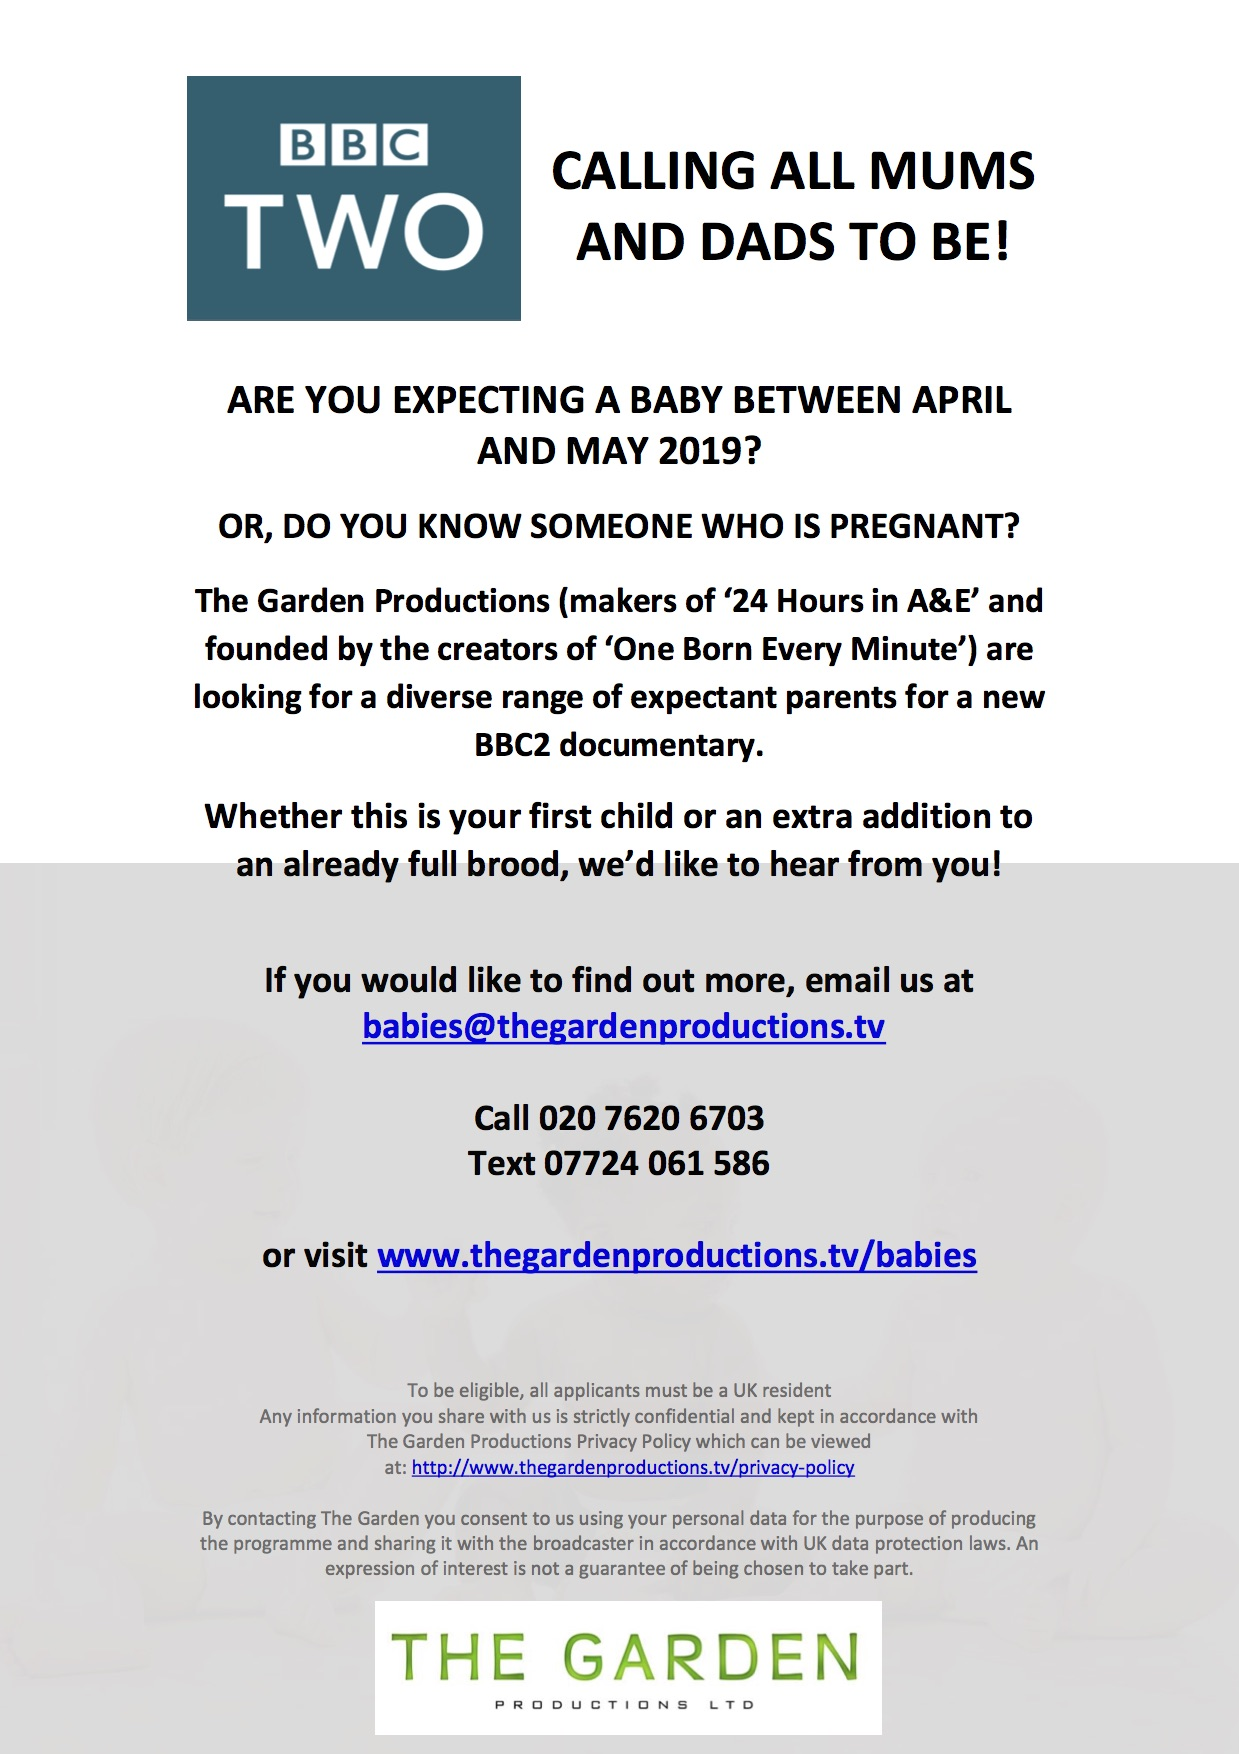 CALLING ALL MUMS AND DADS TO BE